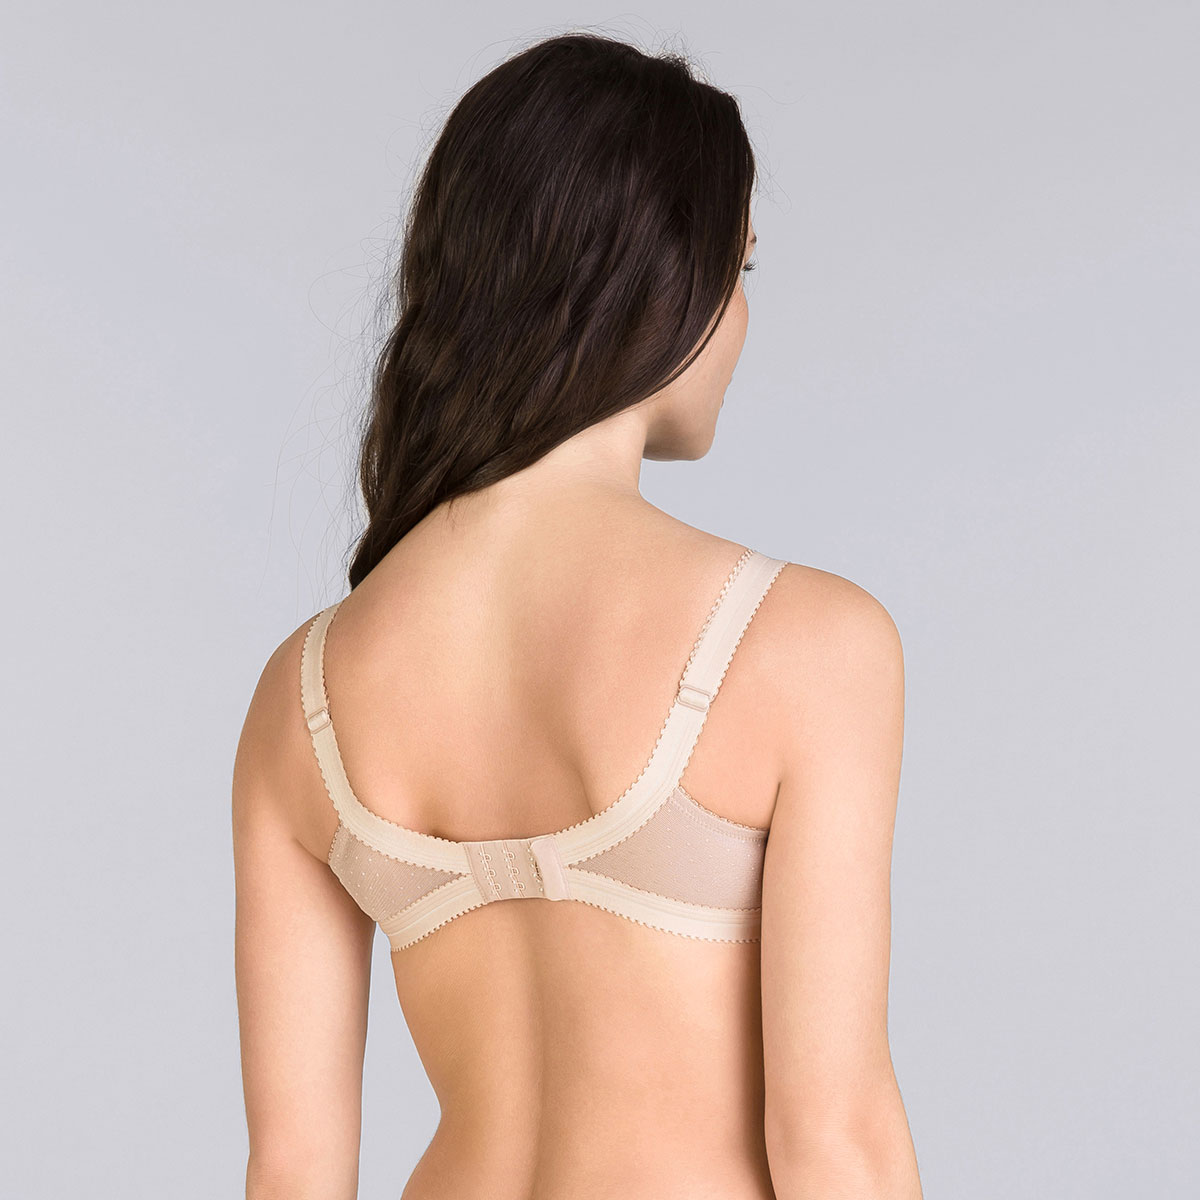 7432babc59 Beige non-wired bra - Cross your Heart Lace-PLAYTEX